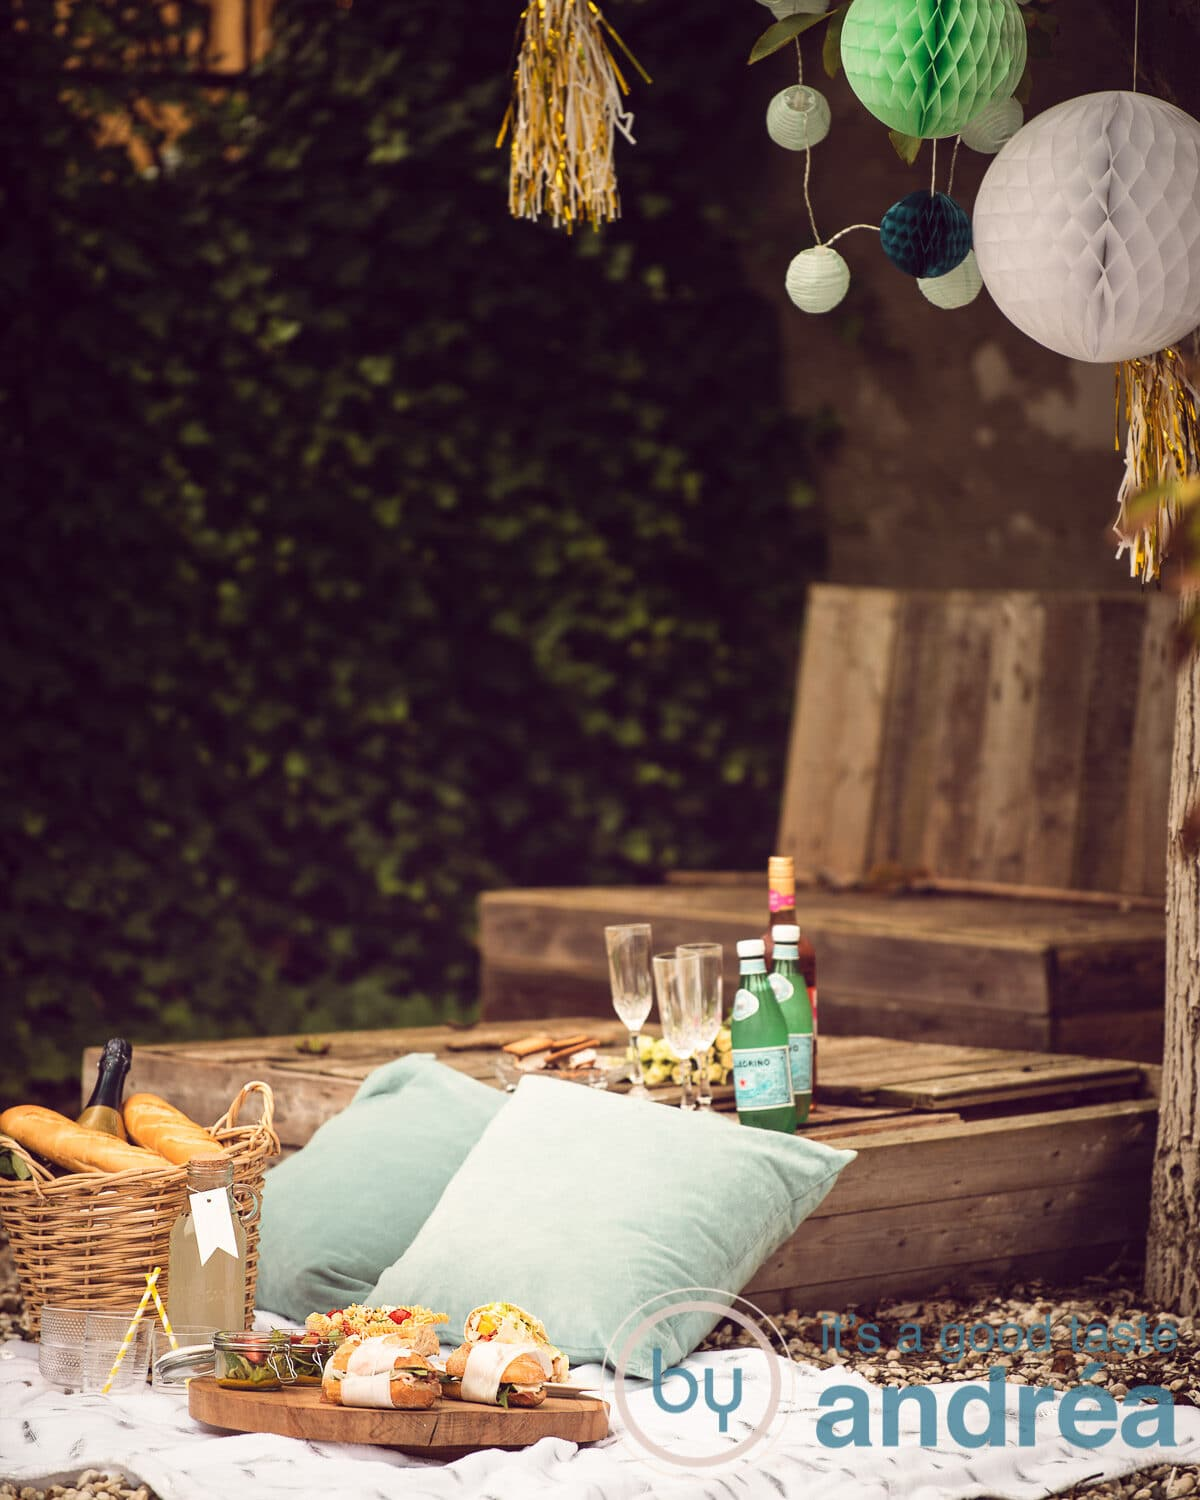 A summer picnic with drinks and food on a white plaid